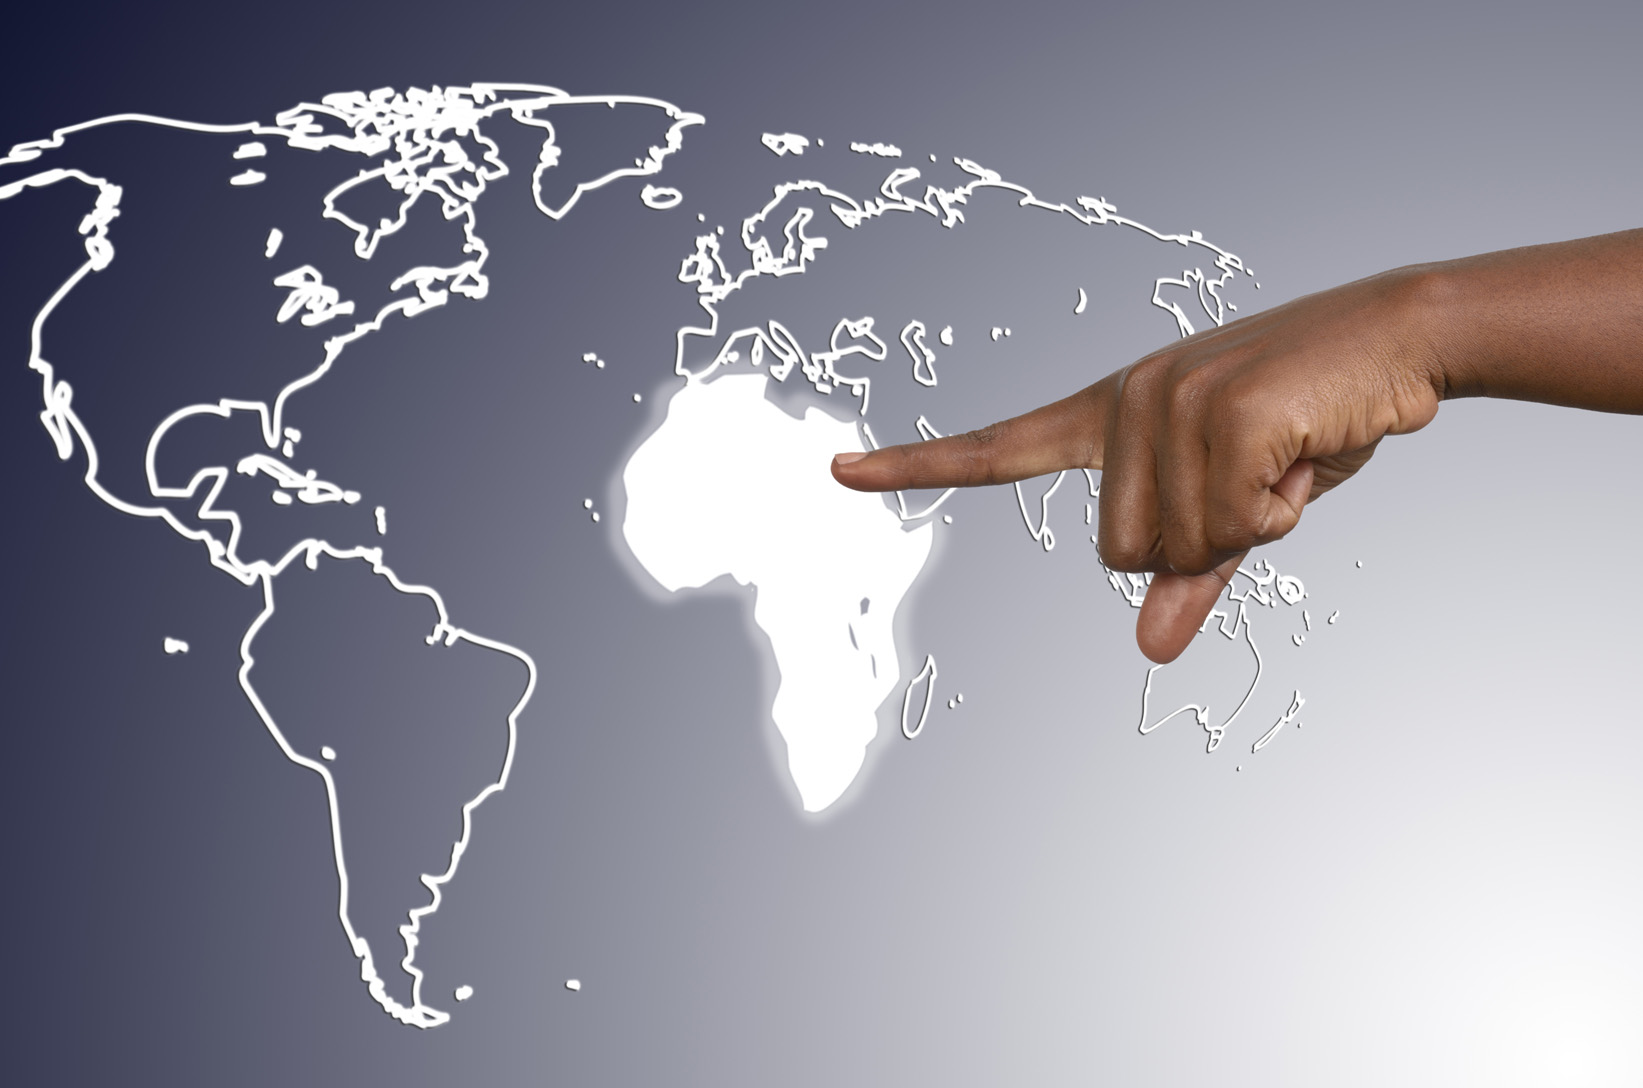 African App launchpad initiative is open for about 20 countries in Africa.